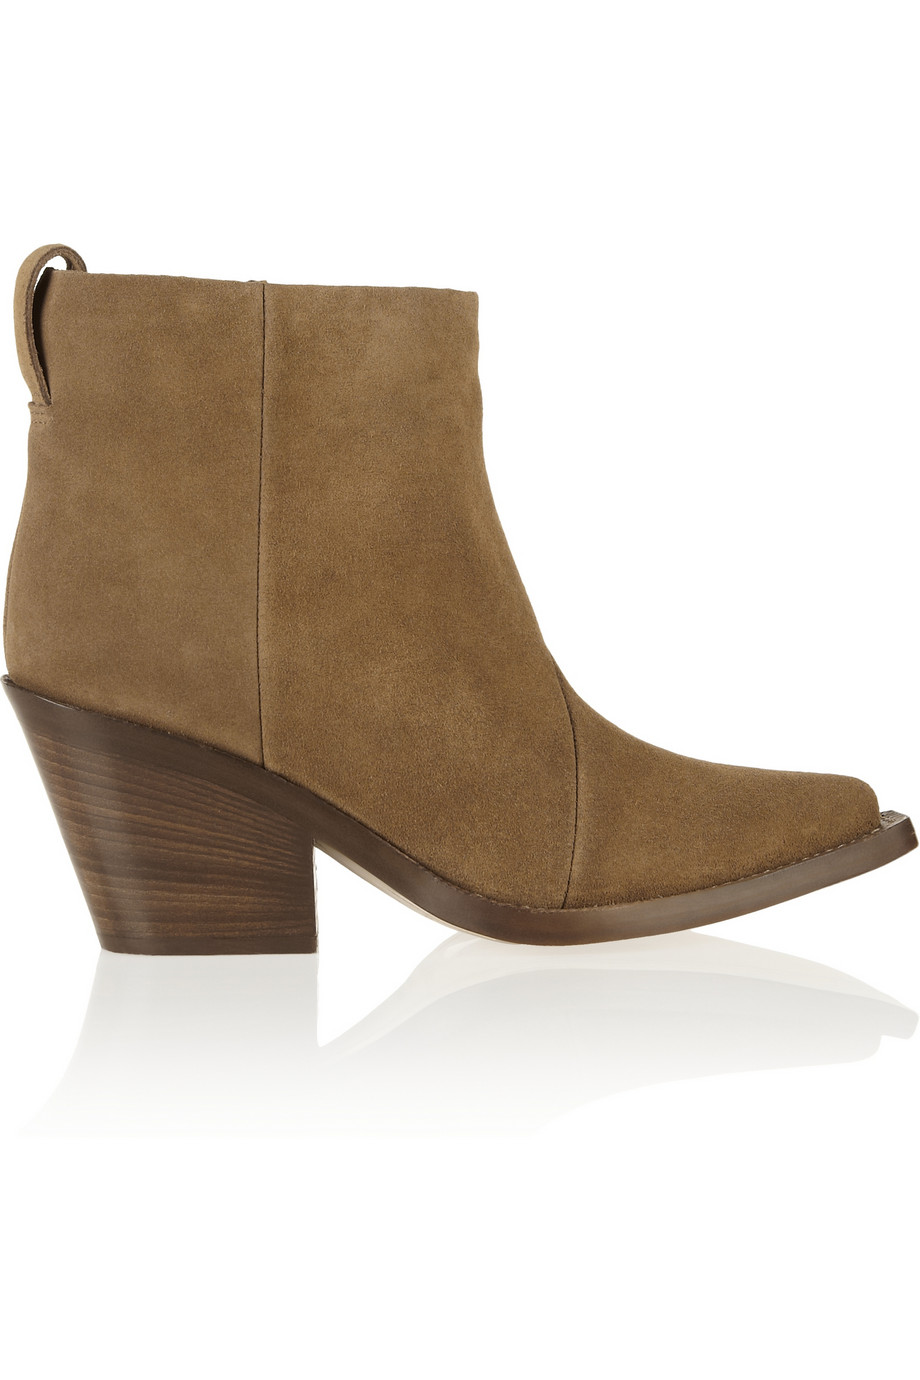 Acne Studios Donna suede ankle boots – 55% at THE OUTNET.COM